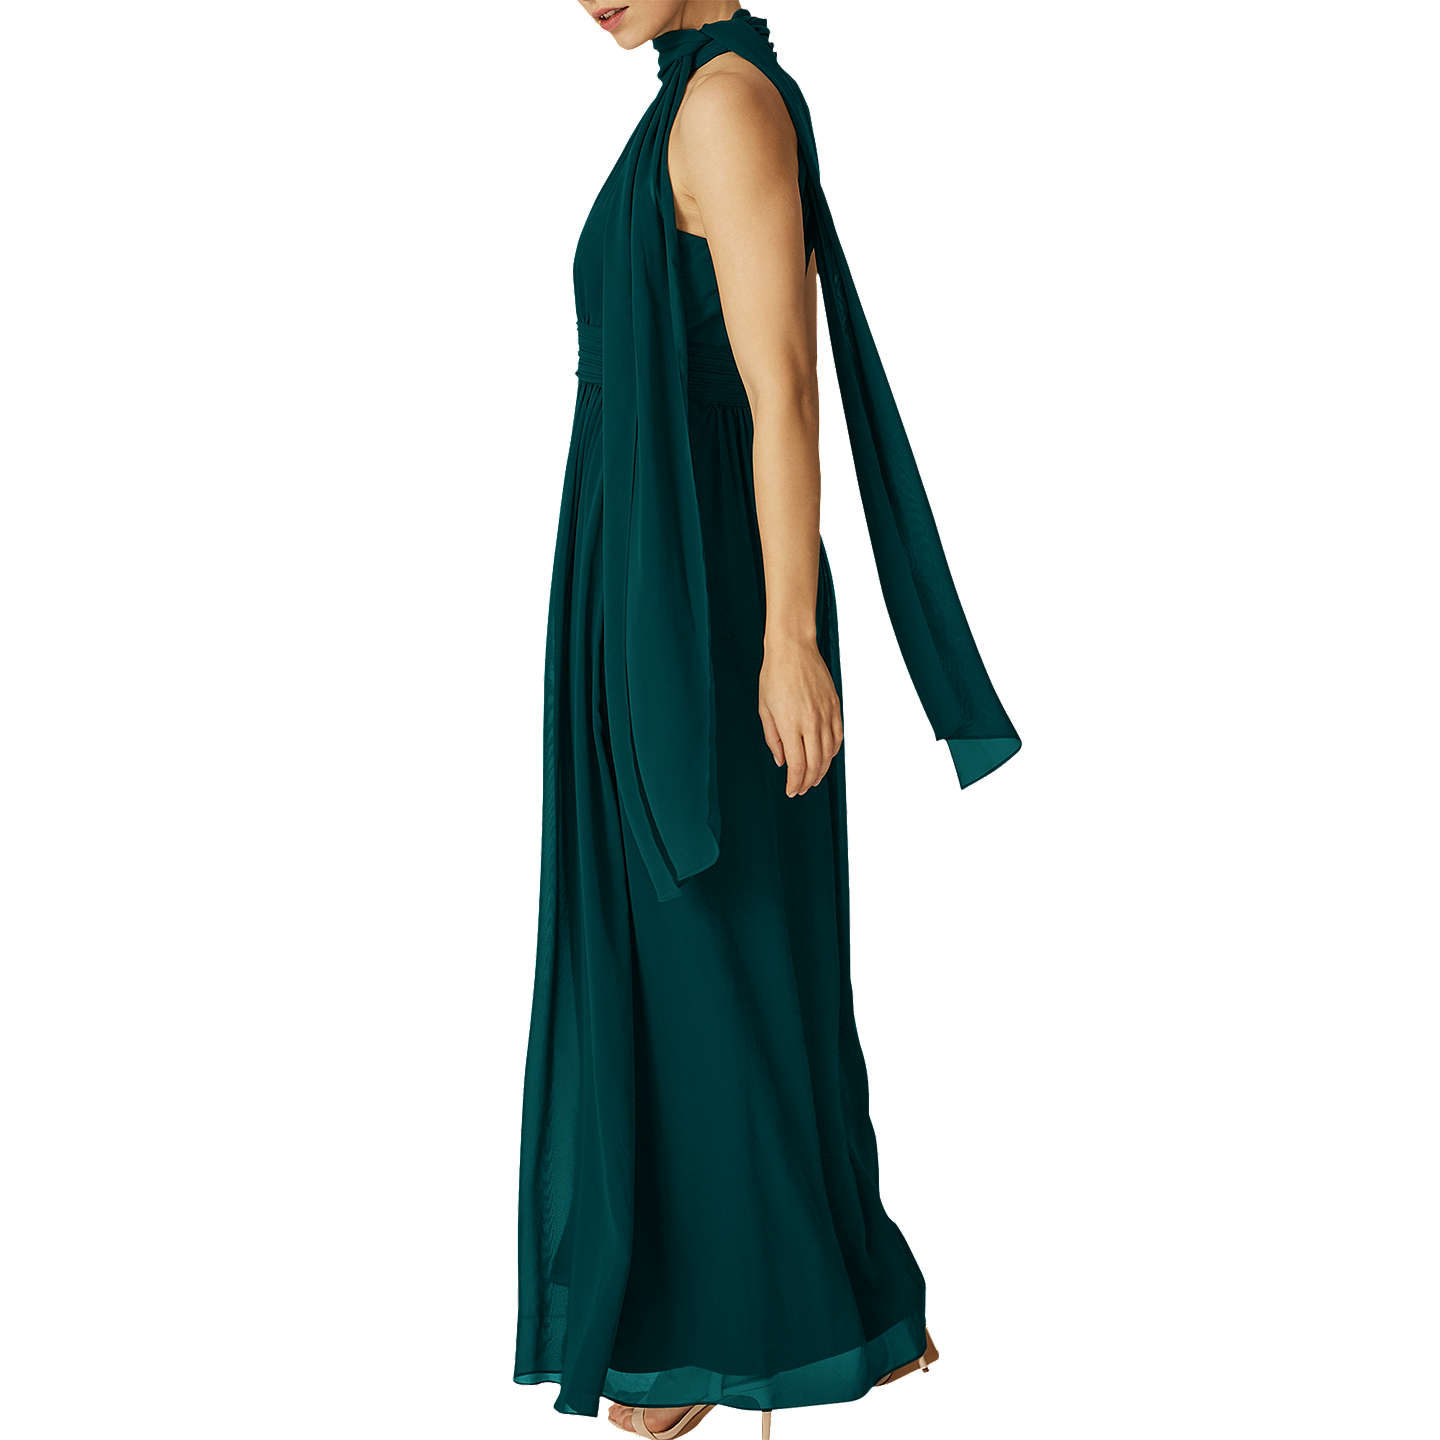 BuyPhase Eight Roxi Halterneck Maxi Dress, Emerald, 6 Online at johnlewis.com